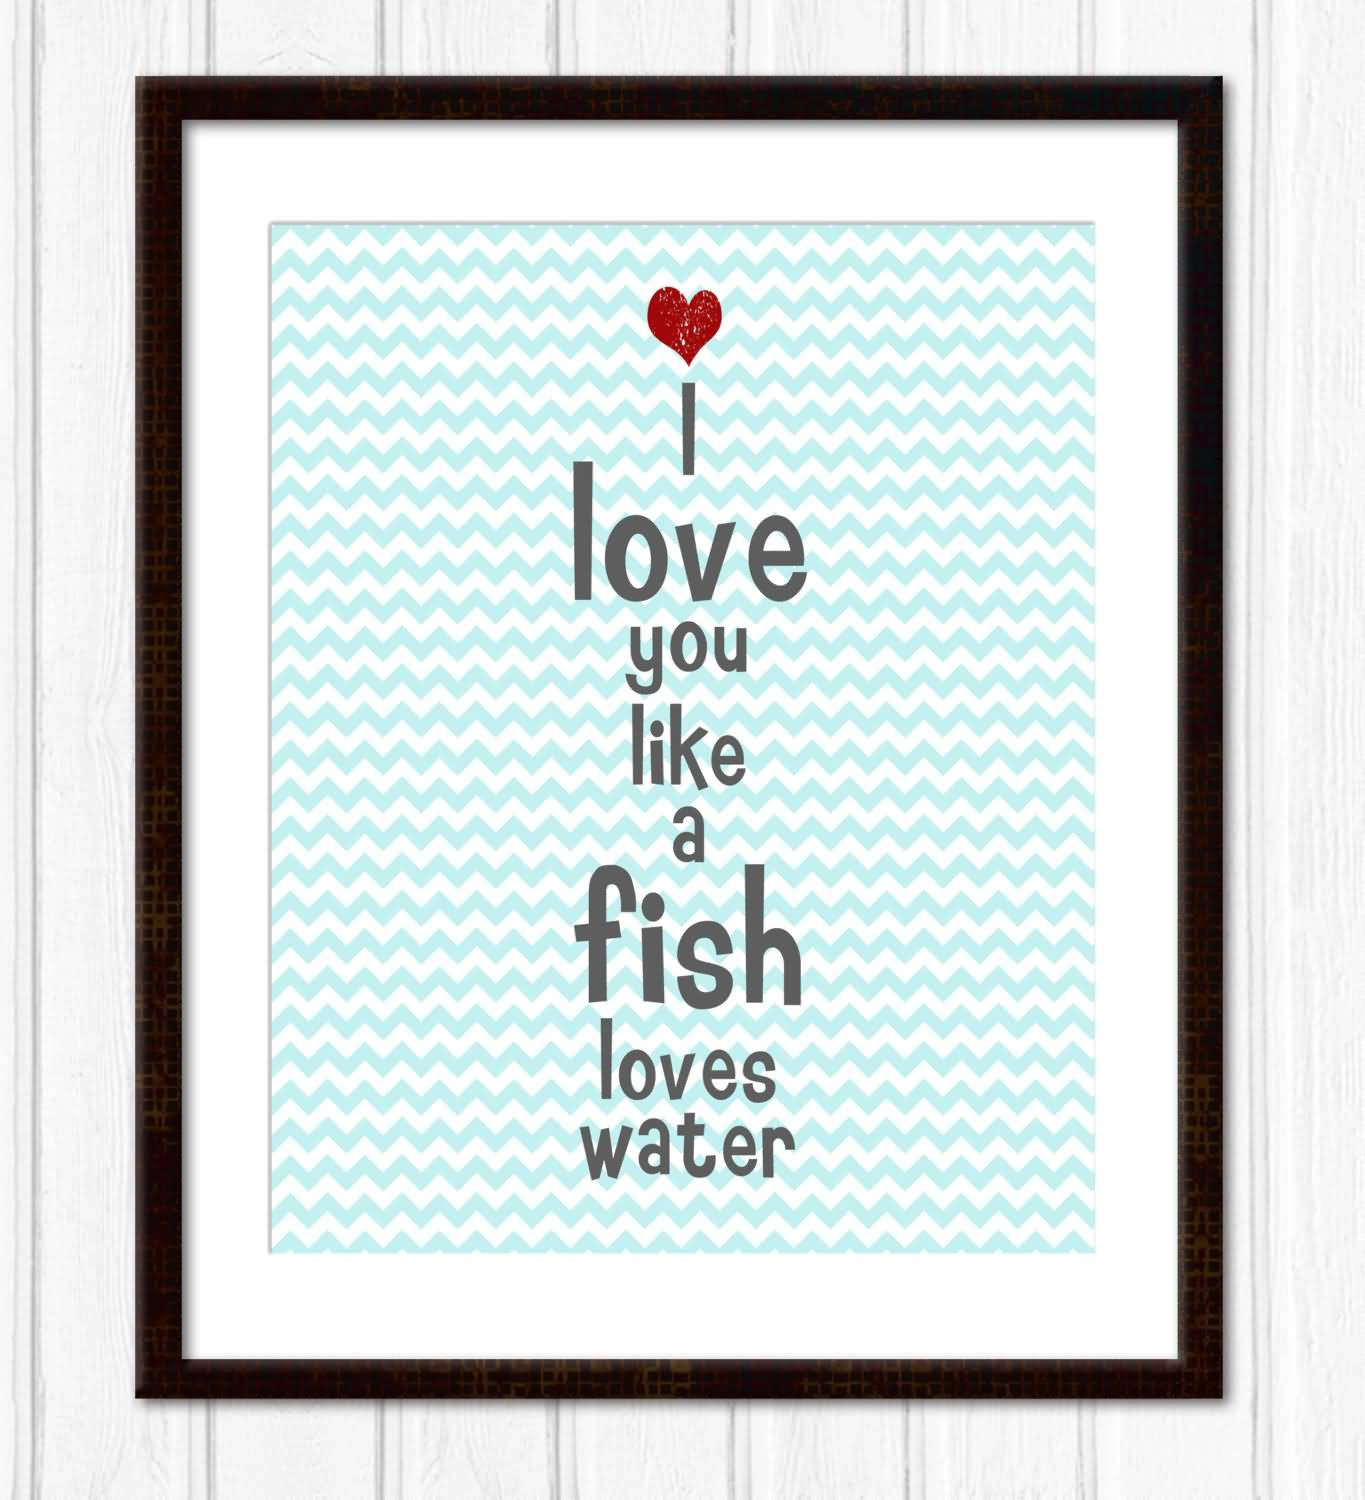 Love Fishing Quotes Love Fishing Quotes 01  Quotesbae